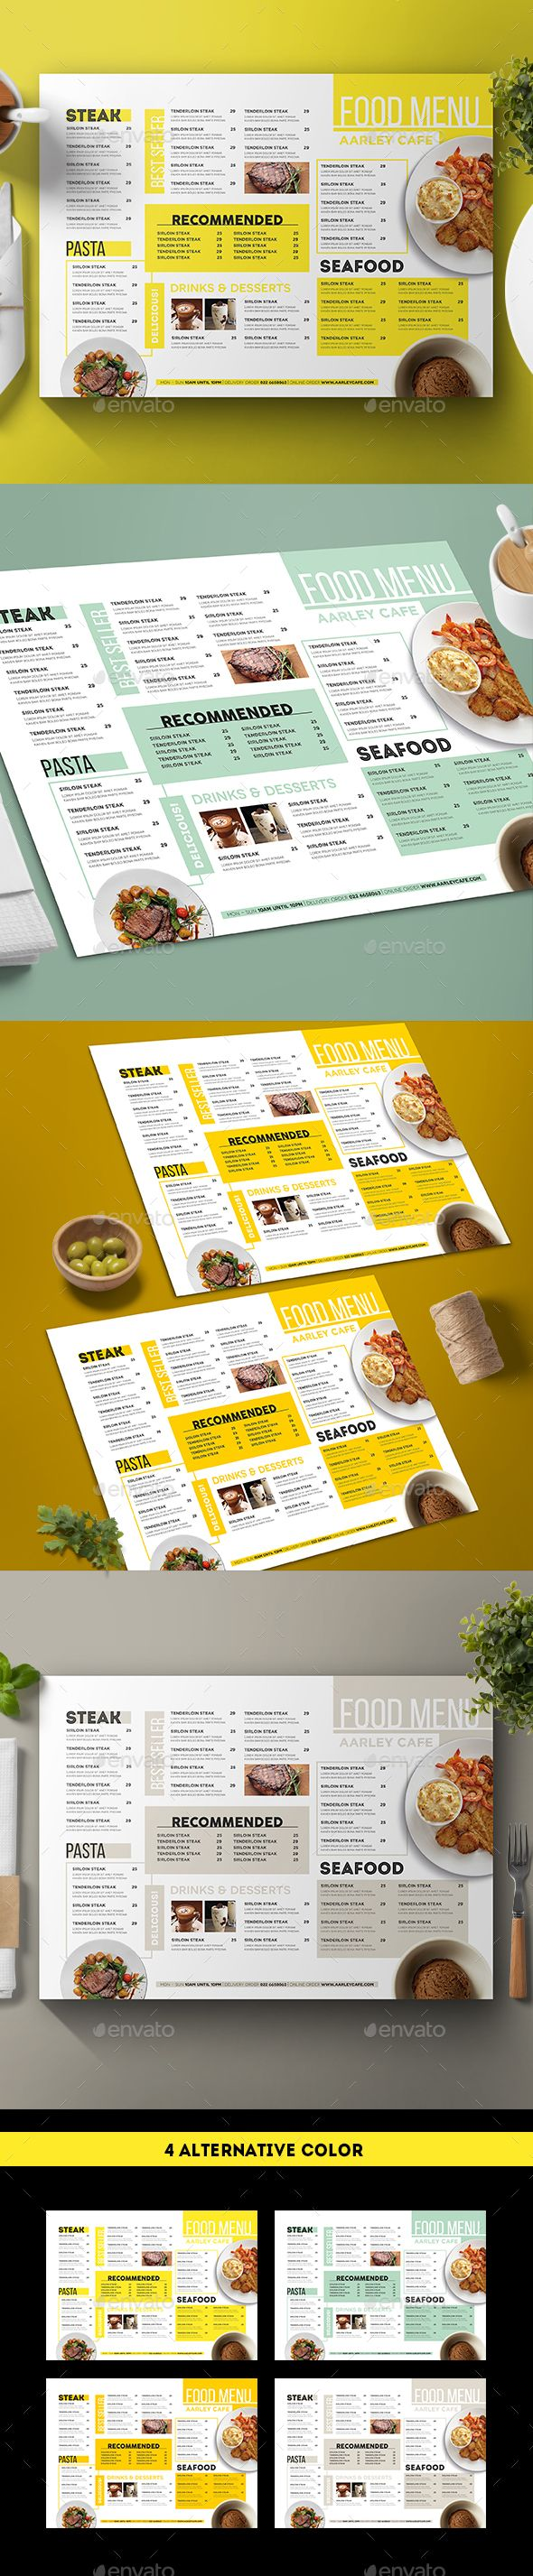 Modern Menu  #ai #illustrator #pizza #clean • Download ➝ https://graphicriver.net/item/modern-menu/18697838?ref=pxcr